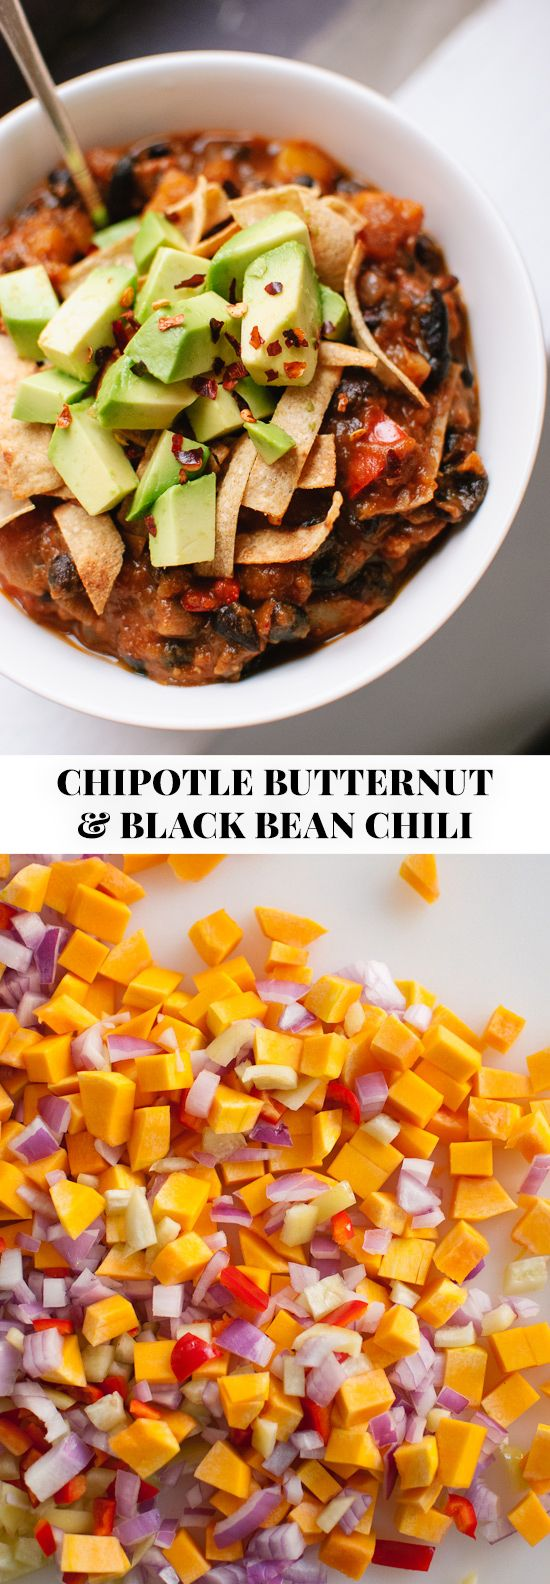 Chipotle butternut squash chili recipe, perfect for game days and cold weather! (Vegetarian, vegan and gluten free.) - @cookieandkate